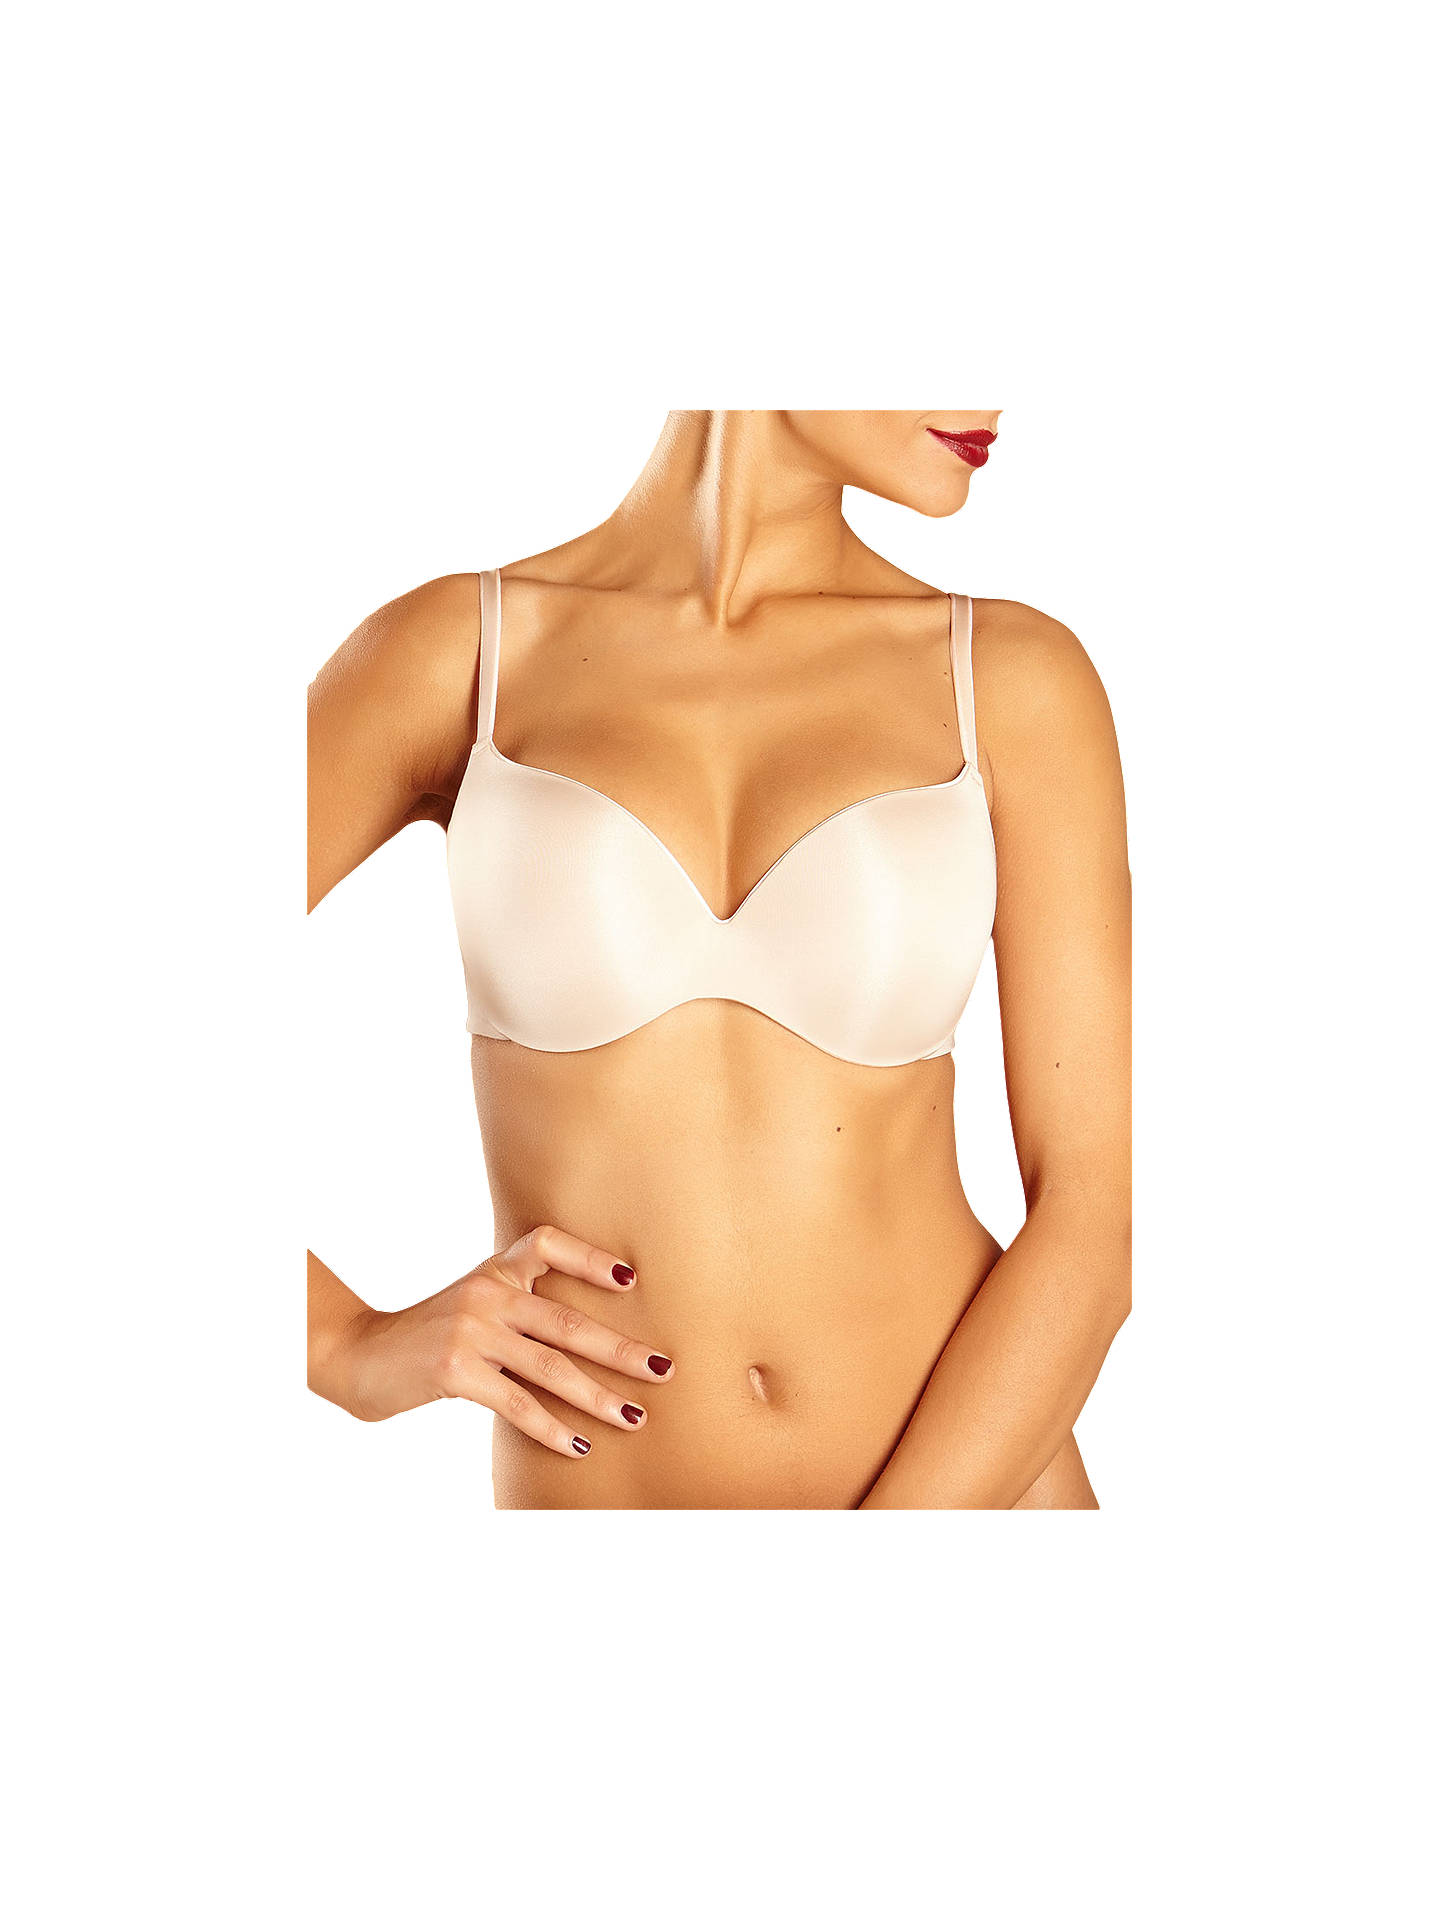 1e5d2aba5313c Buy Chantelle Irresistible T-Shirt Bra, Cappuccino, 32B Online at  johnlewis.com ...